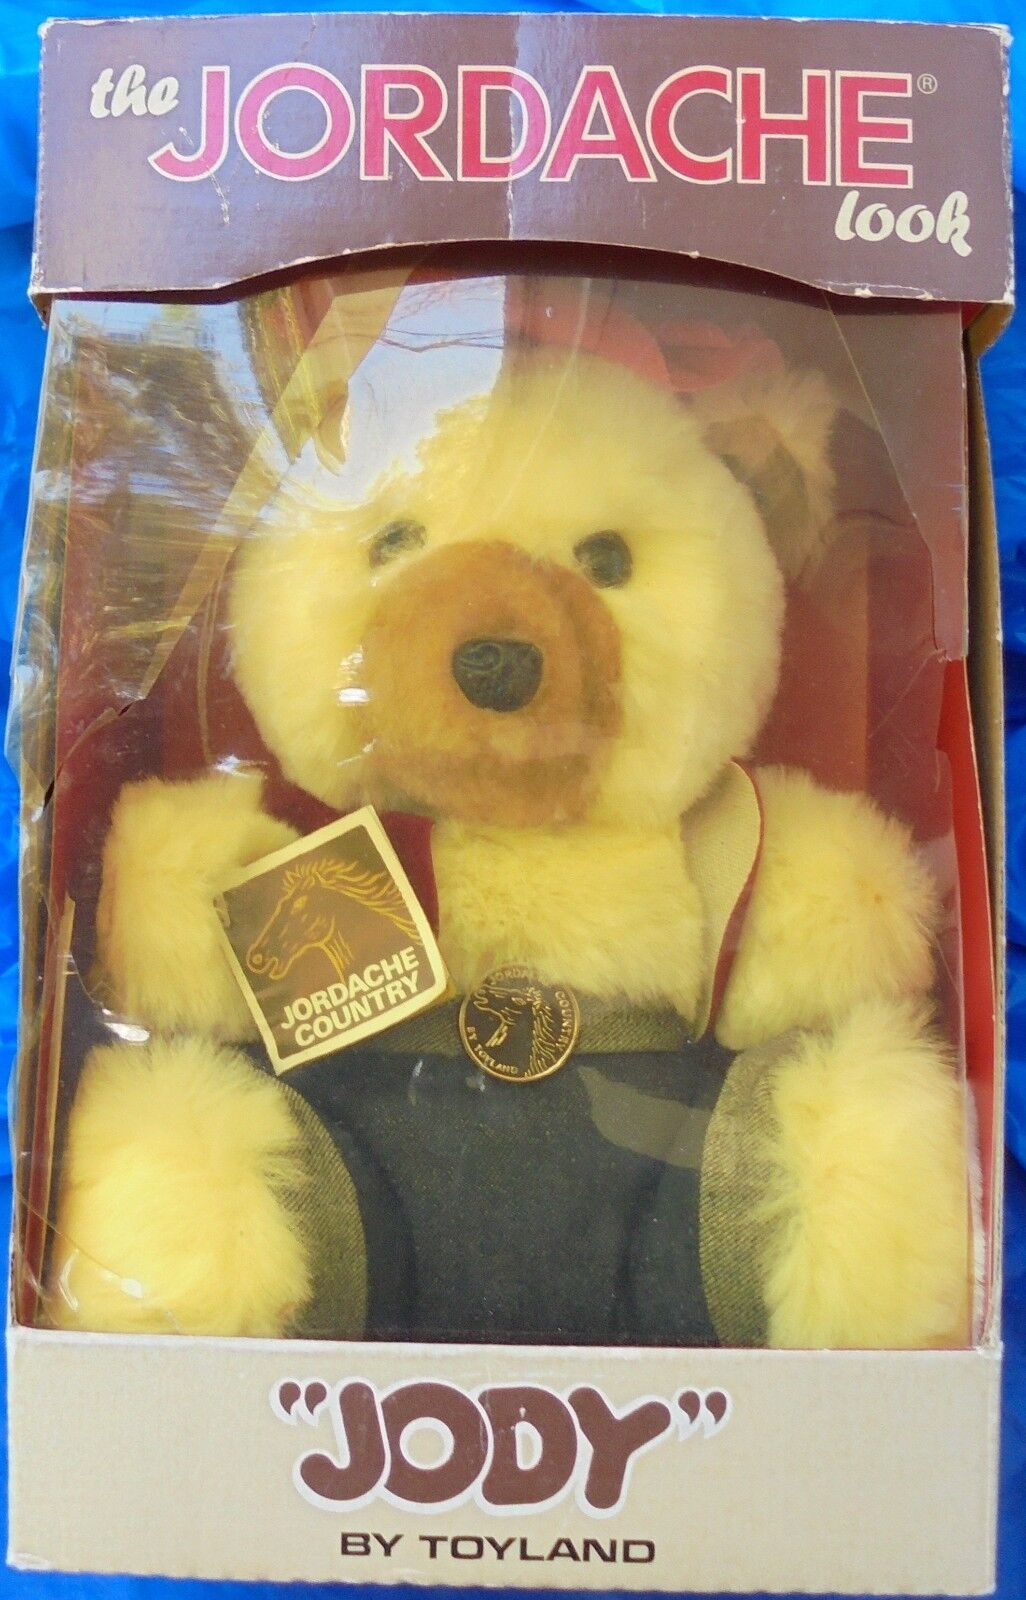 The Jordache Look Jody Toyland MIP MIB Rare Country Bear Stuffed Toy 1981 VTG